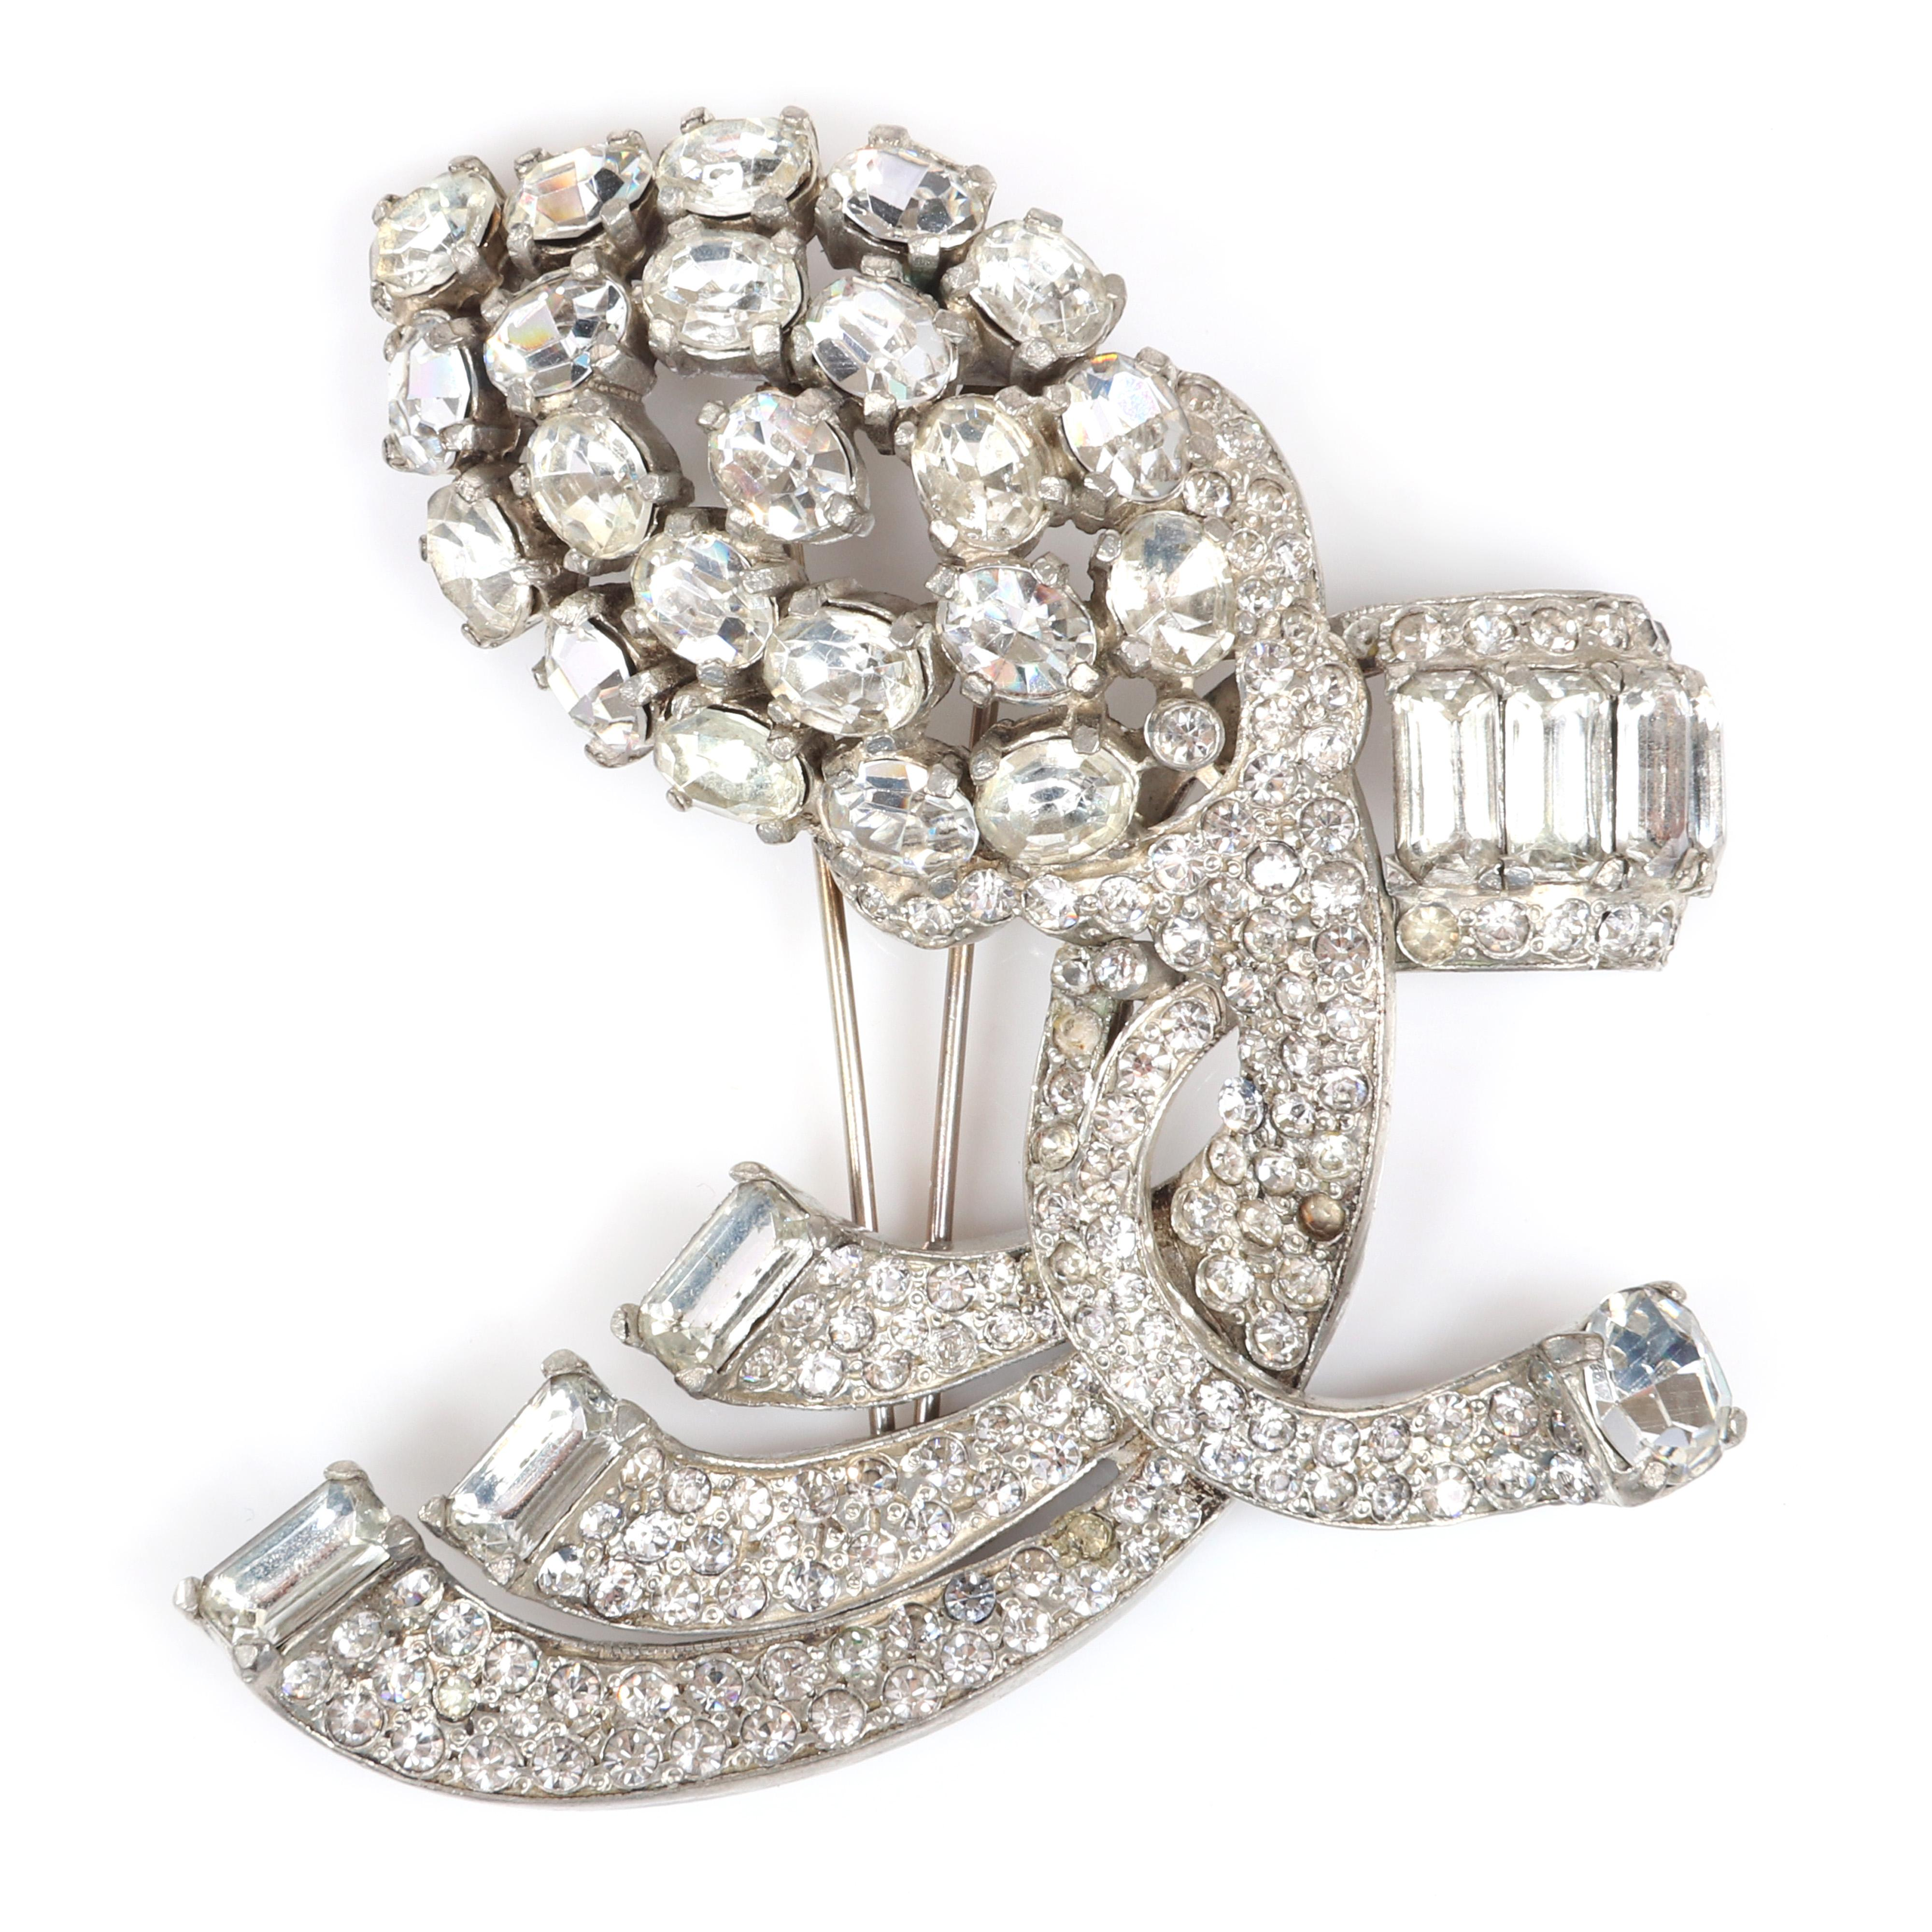 "Eisenberg Original freeform Art Deco diamante stylized floral fur clip with pave and bezel-set rhinestones, baguettes and large faceted crystals, c. 1940. 3 1/2"" x 3 1/2"""